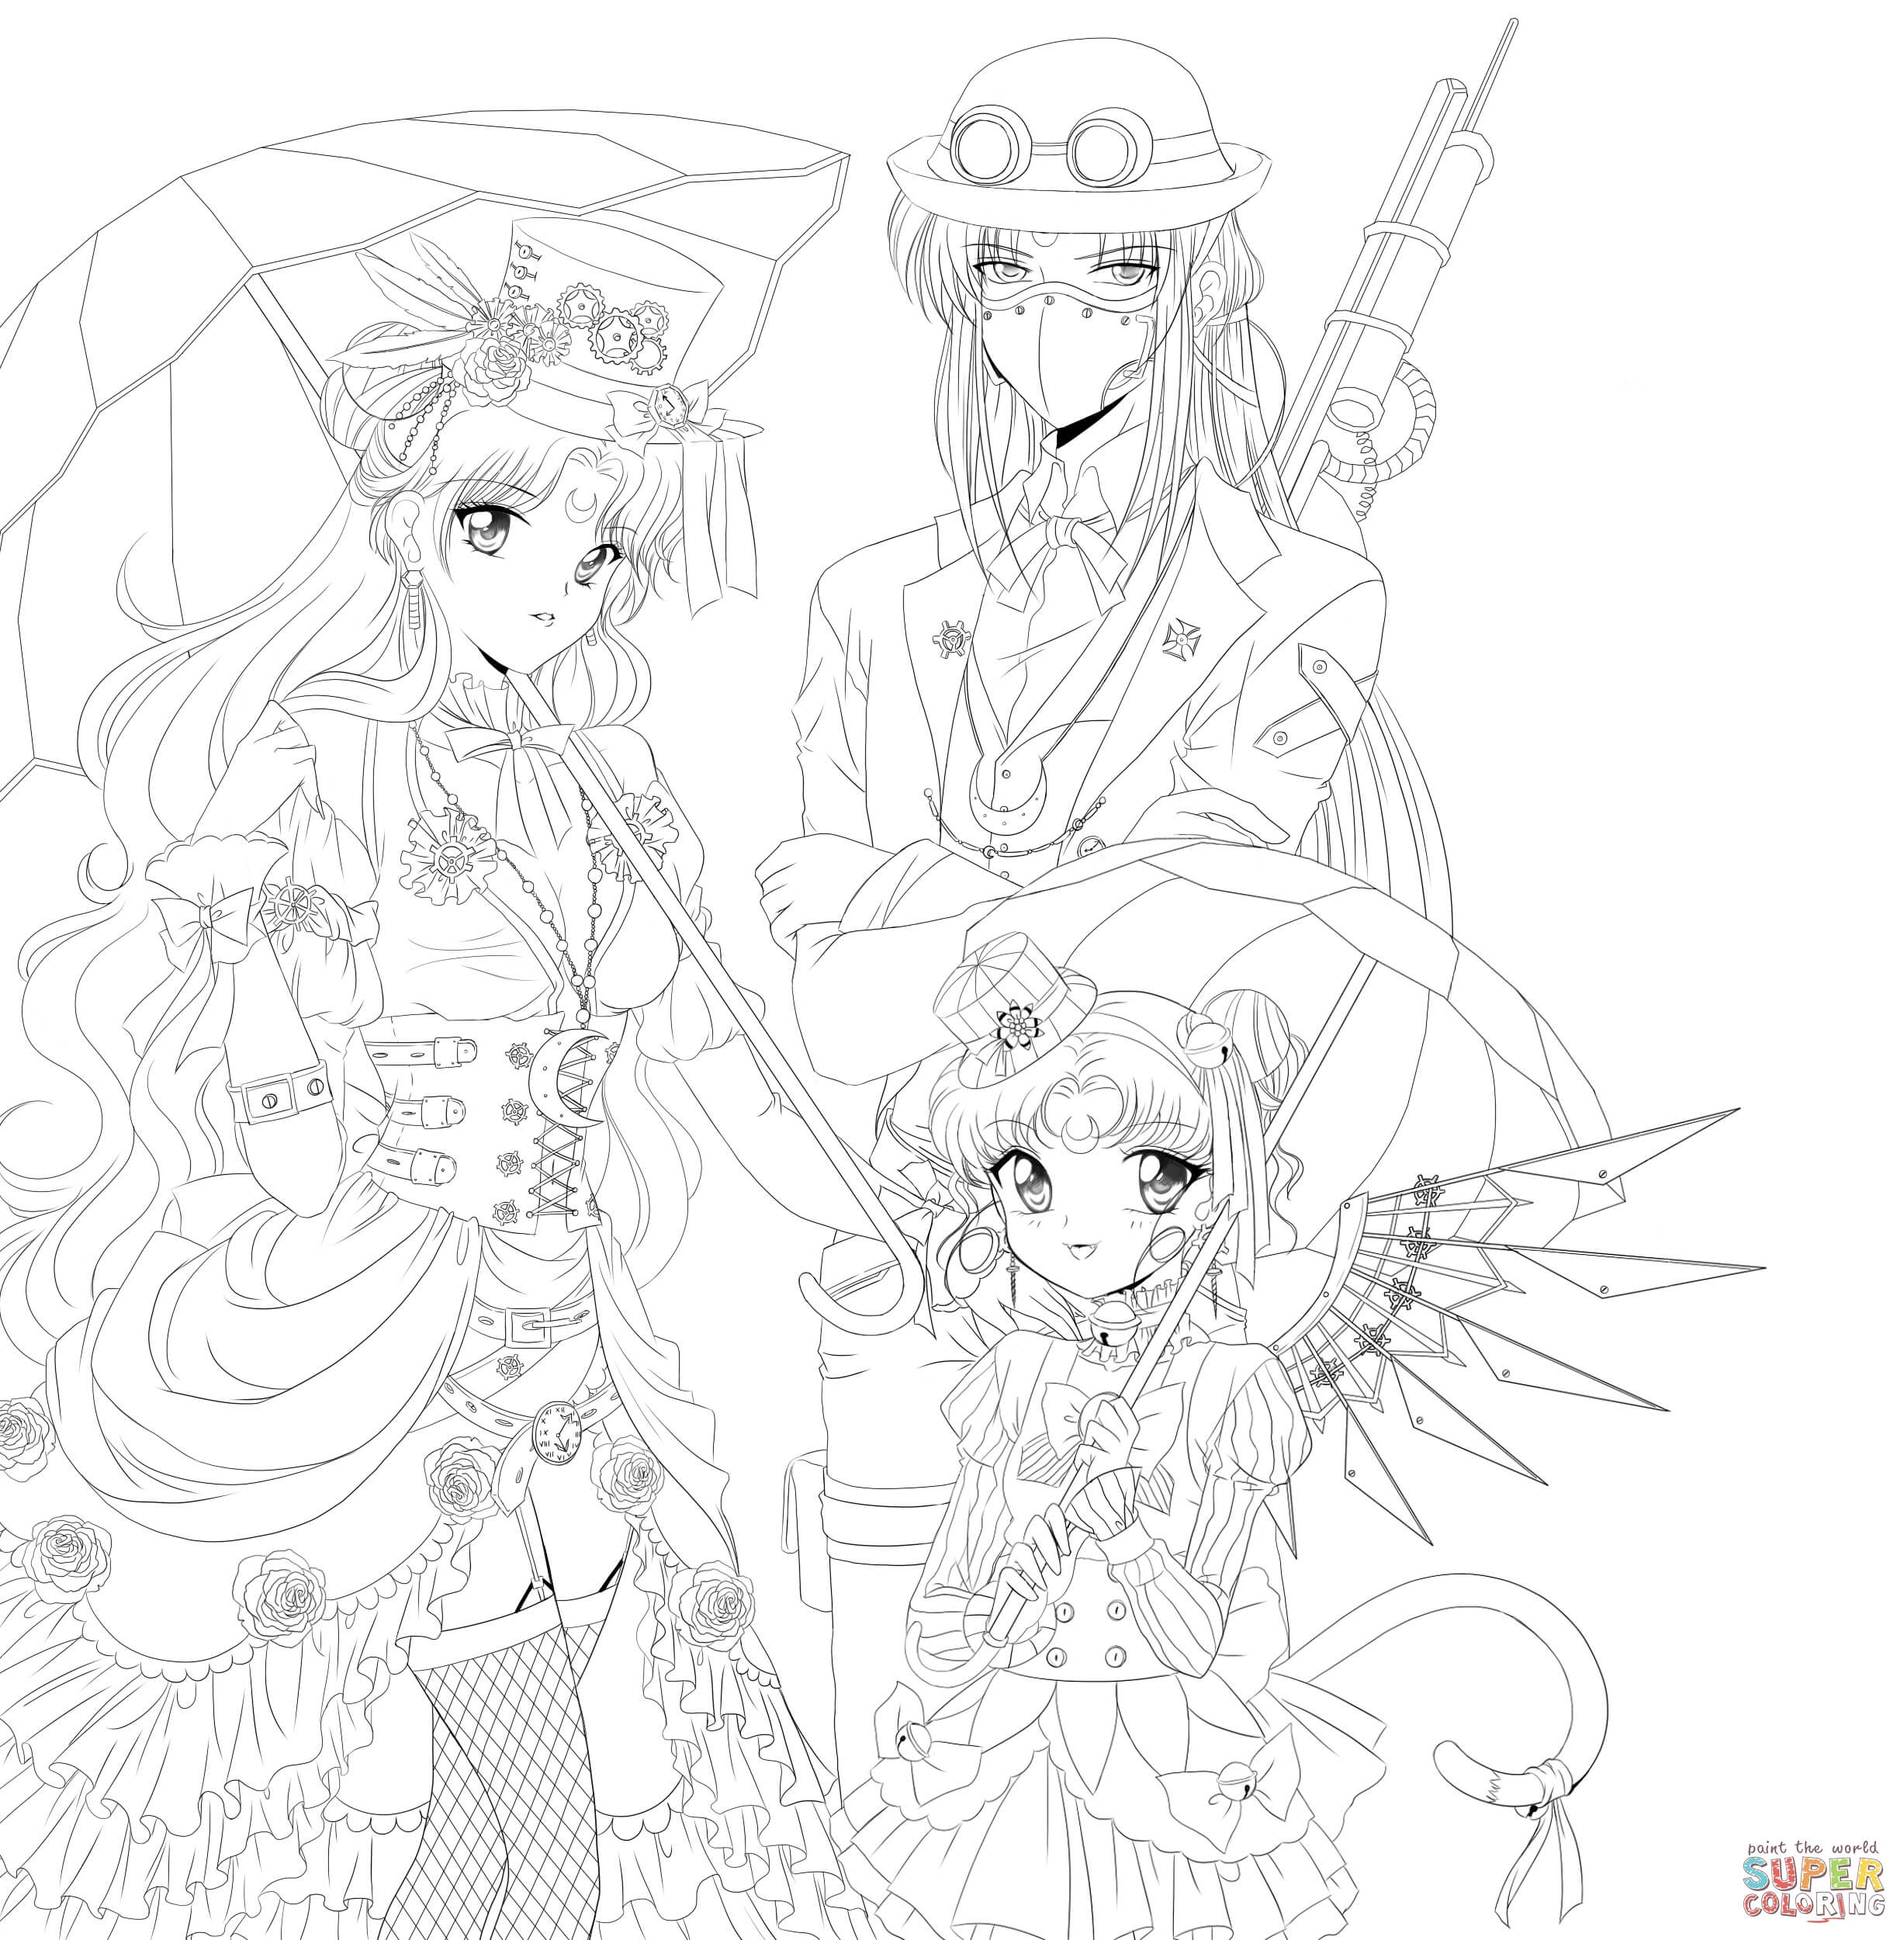 Steampunk Gears Coloring Pages  Gallery 1r - Free For kids